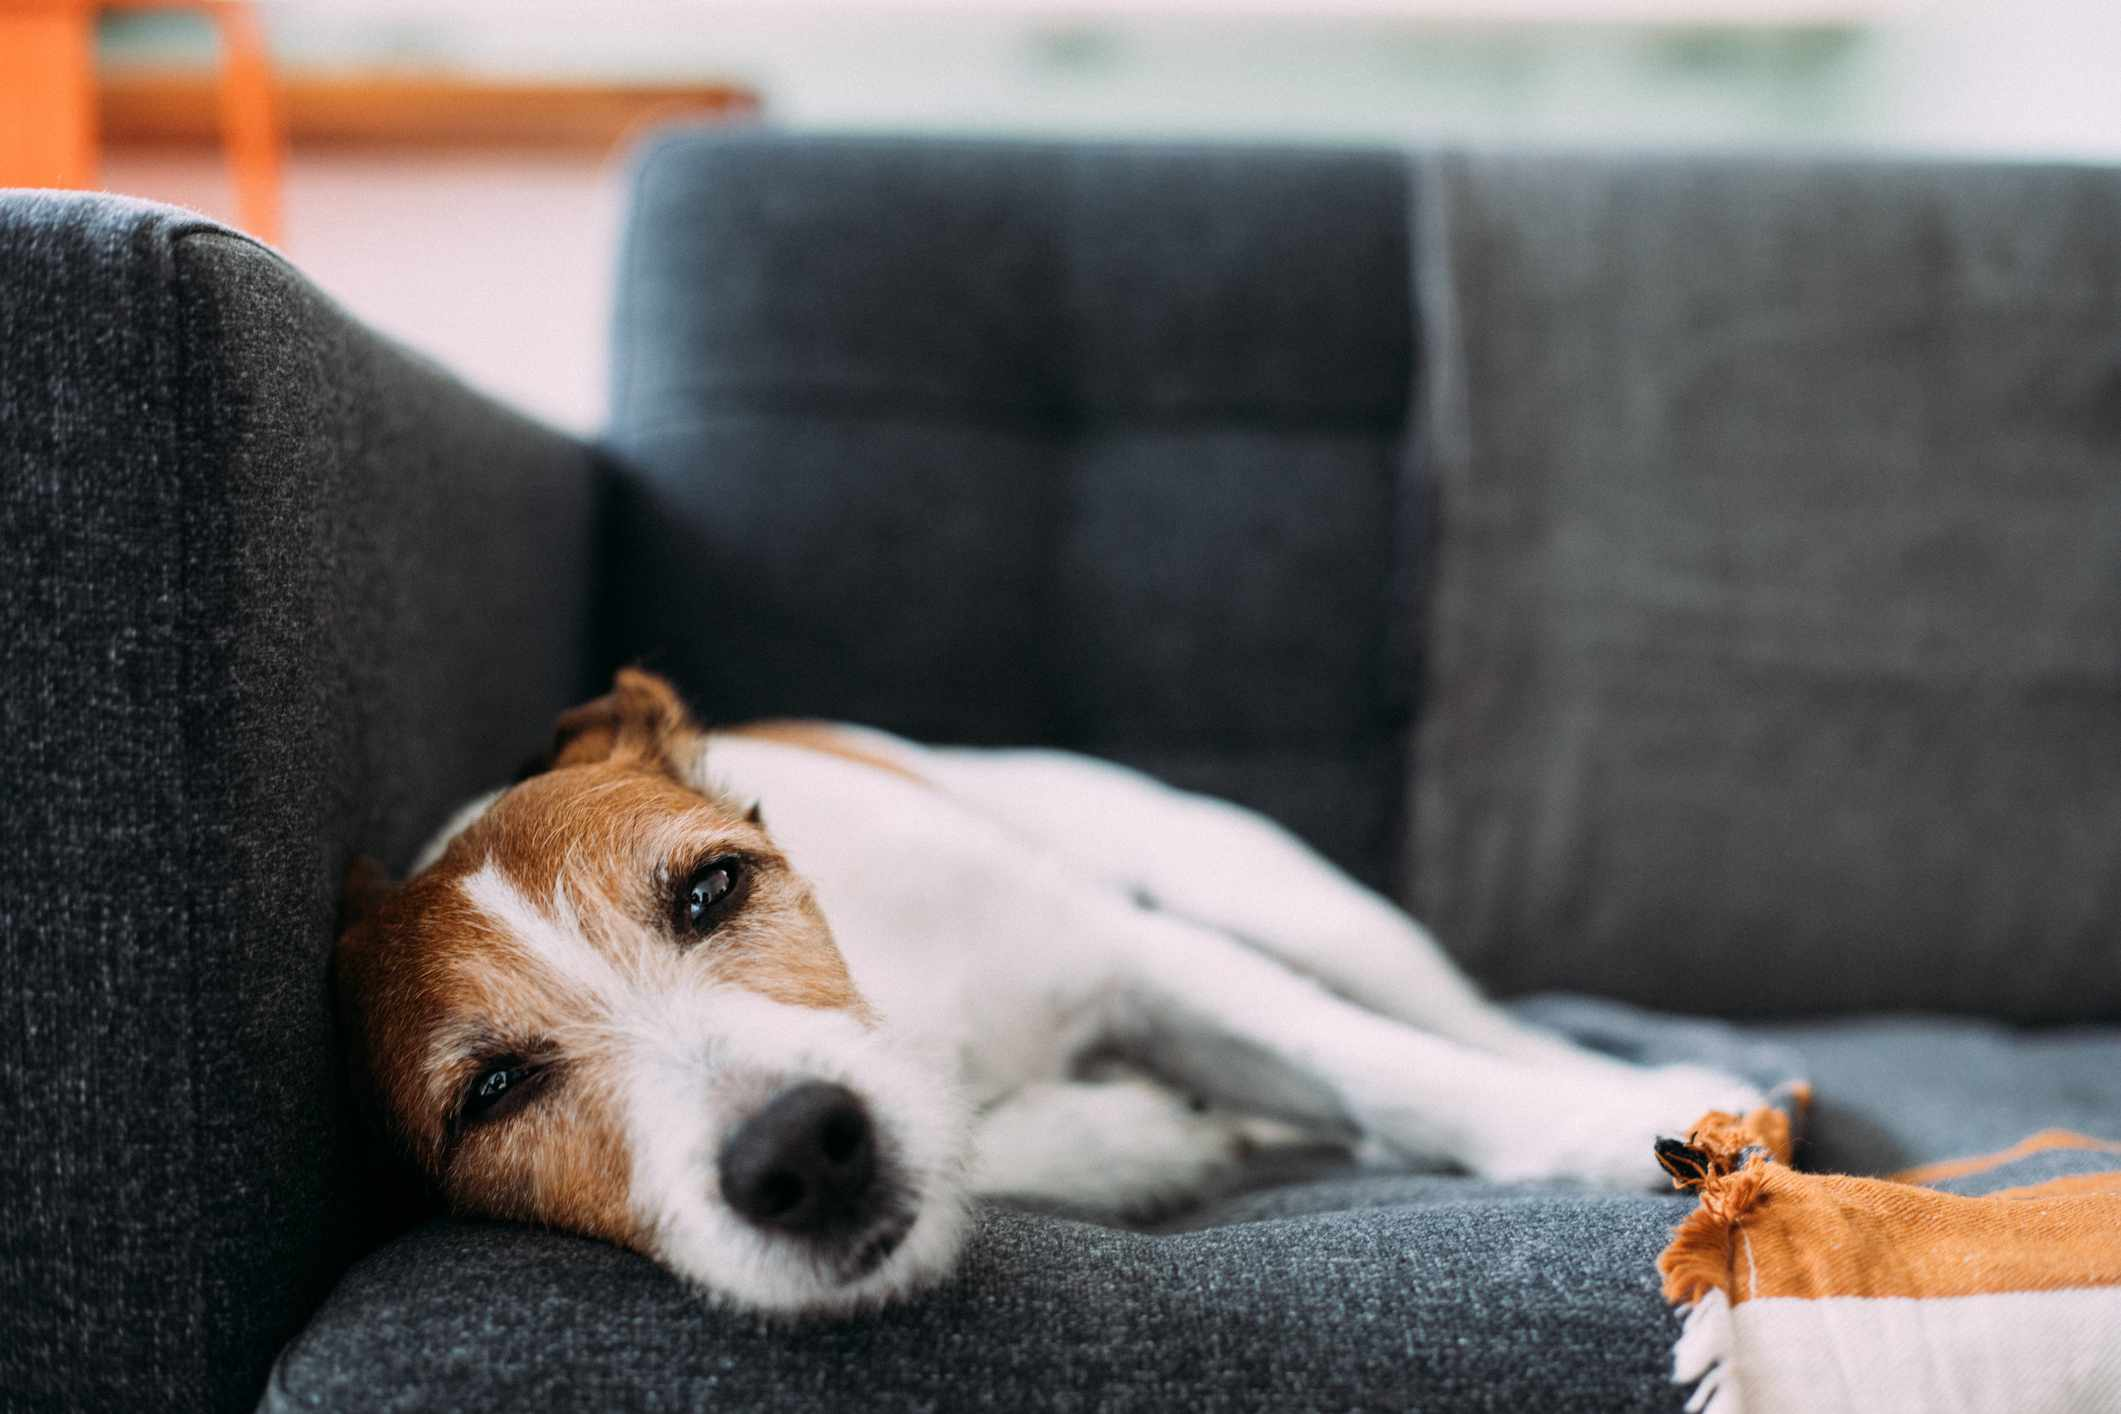 Parson Russell terrier lying on sofa, looking ill and sad